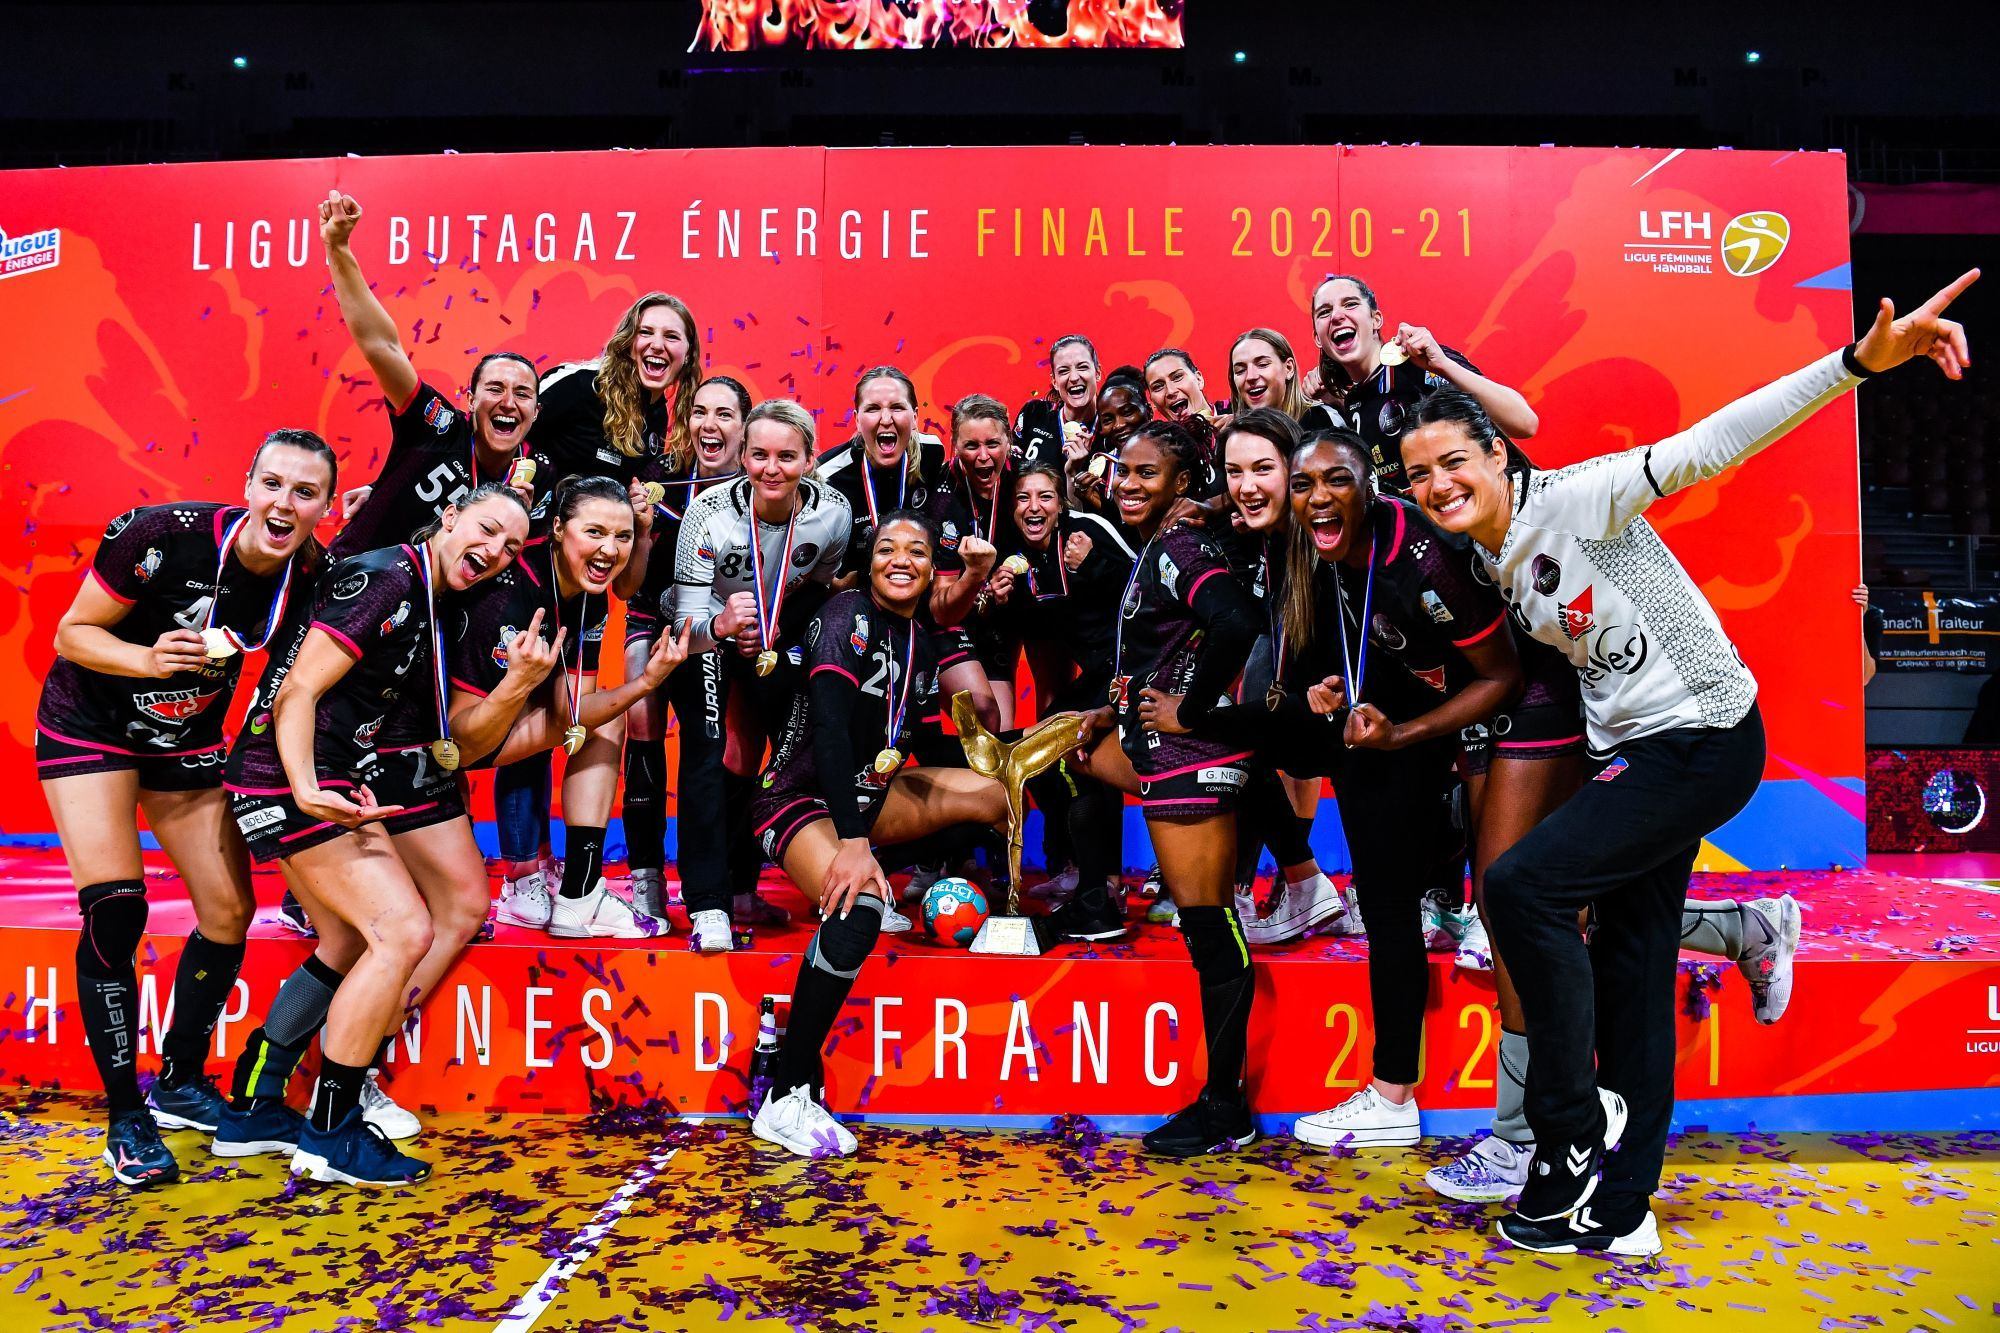 Players of Brest celebrate on the podium with the trophy after the women's Ligue Butagaz Energie final match between Brest and Metz at Brest Arena on May 23, 2021 in Brest, France. (Photo by Baptiste Fernandez/Icon Sport) - Brest (France)